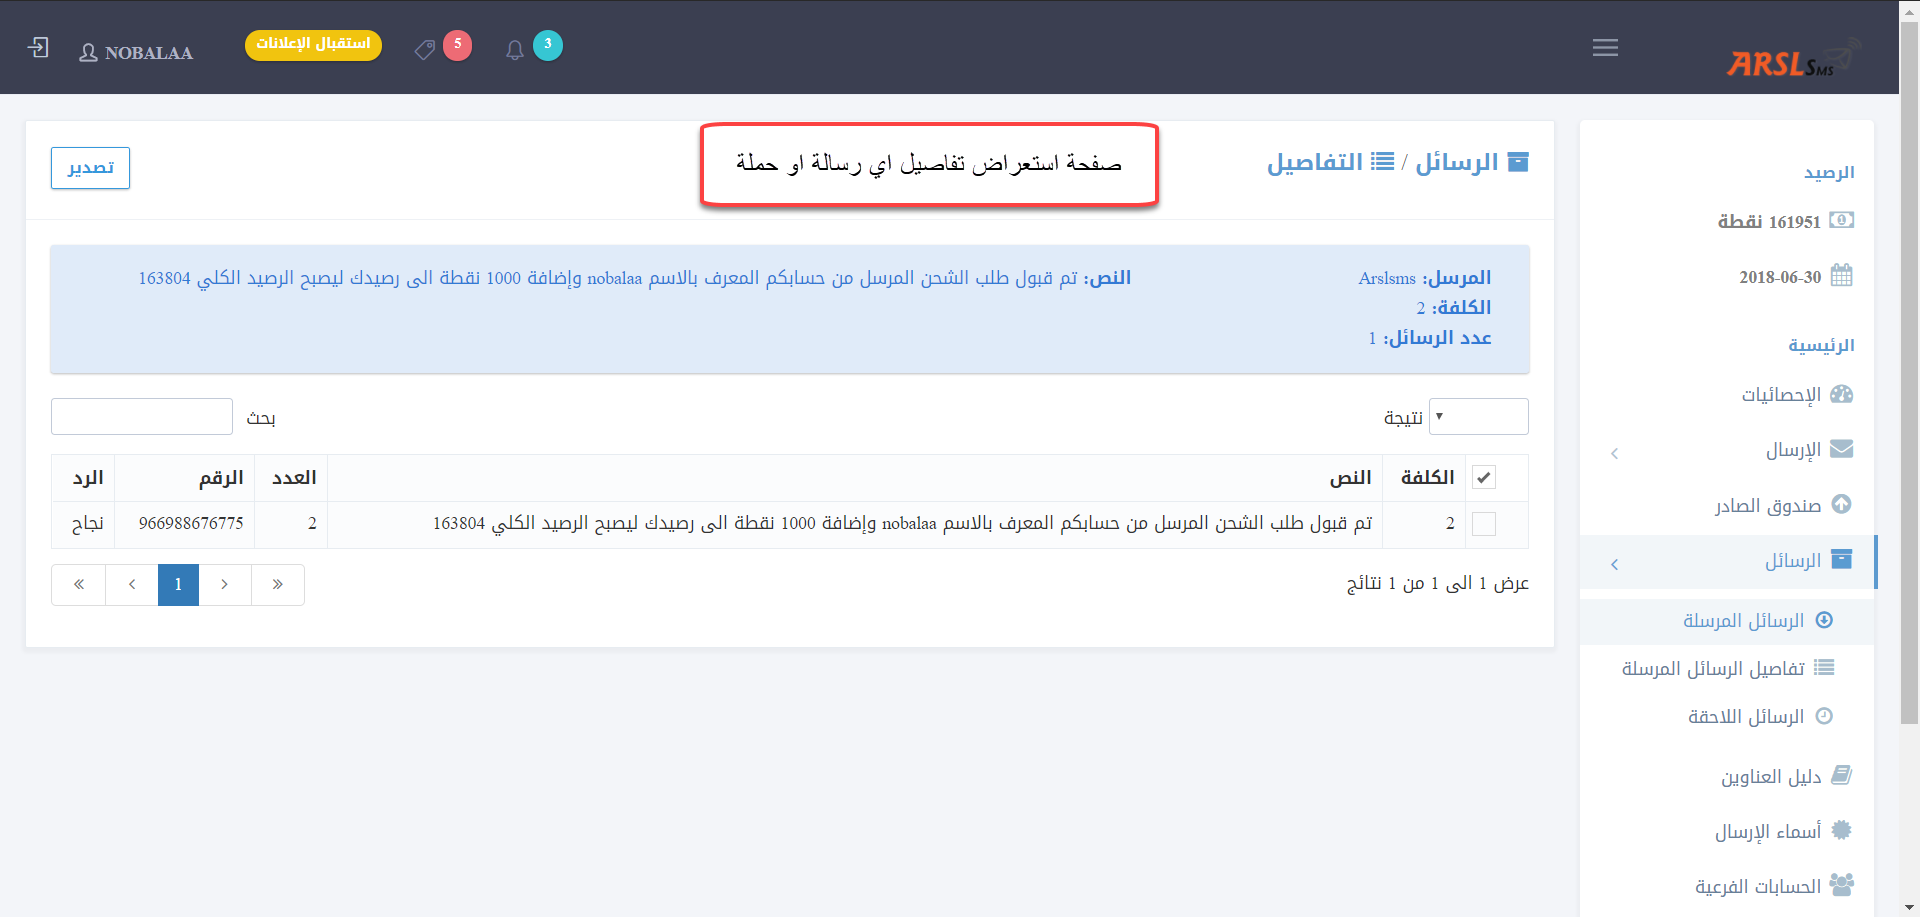 nobalaa-sms-script-sms-detailes-archive